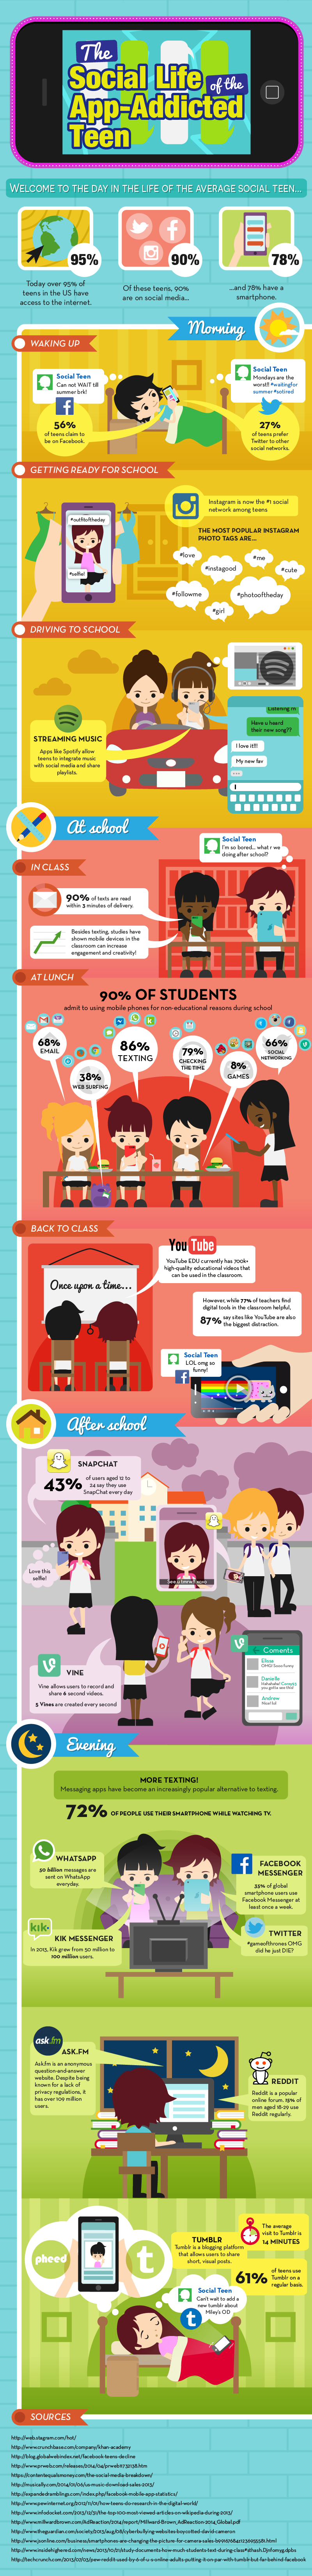 Social Teens - Addicted to Apps Infographic_Check out this great infographic by TeenSafe to uncover details and insight into today's social life of our app-addicted social teens - it's worrying!!